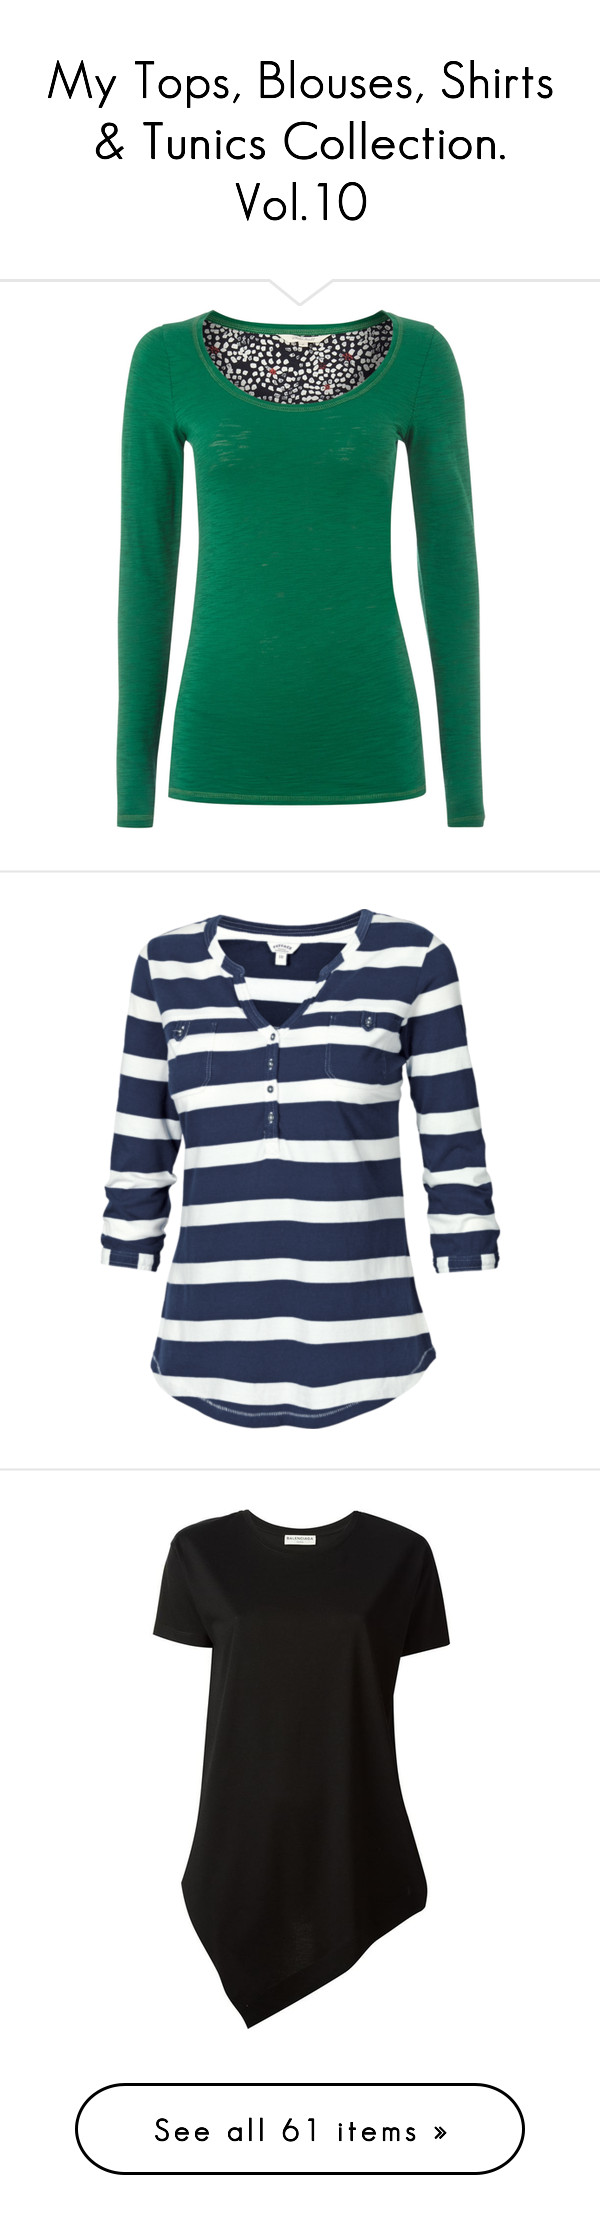 """My Tops, Blouses, Shirts & Tunics Collection. Vol.10"" by eve-stardust on Polyvore featuring tops, t-shirts, shirts, long sleeve shirts, clearance, green, scoop neck t shirt, white shirt, t shirts and white long sleeve shirt"